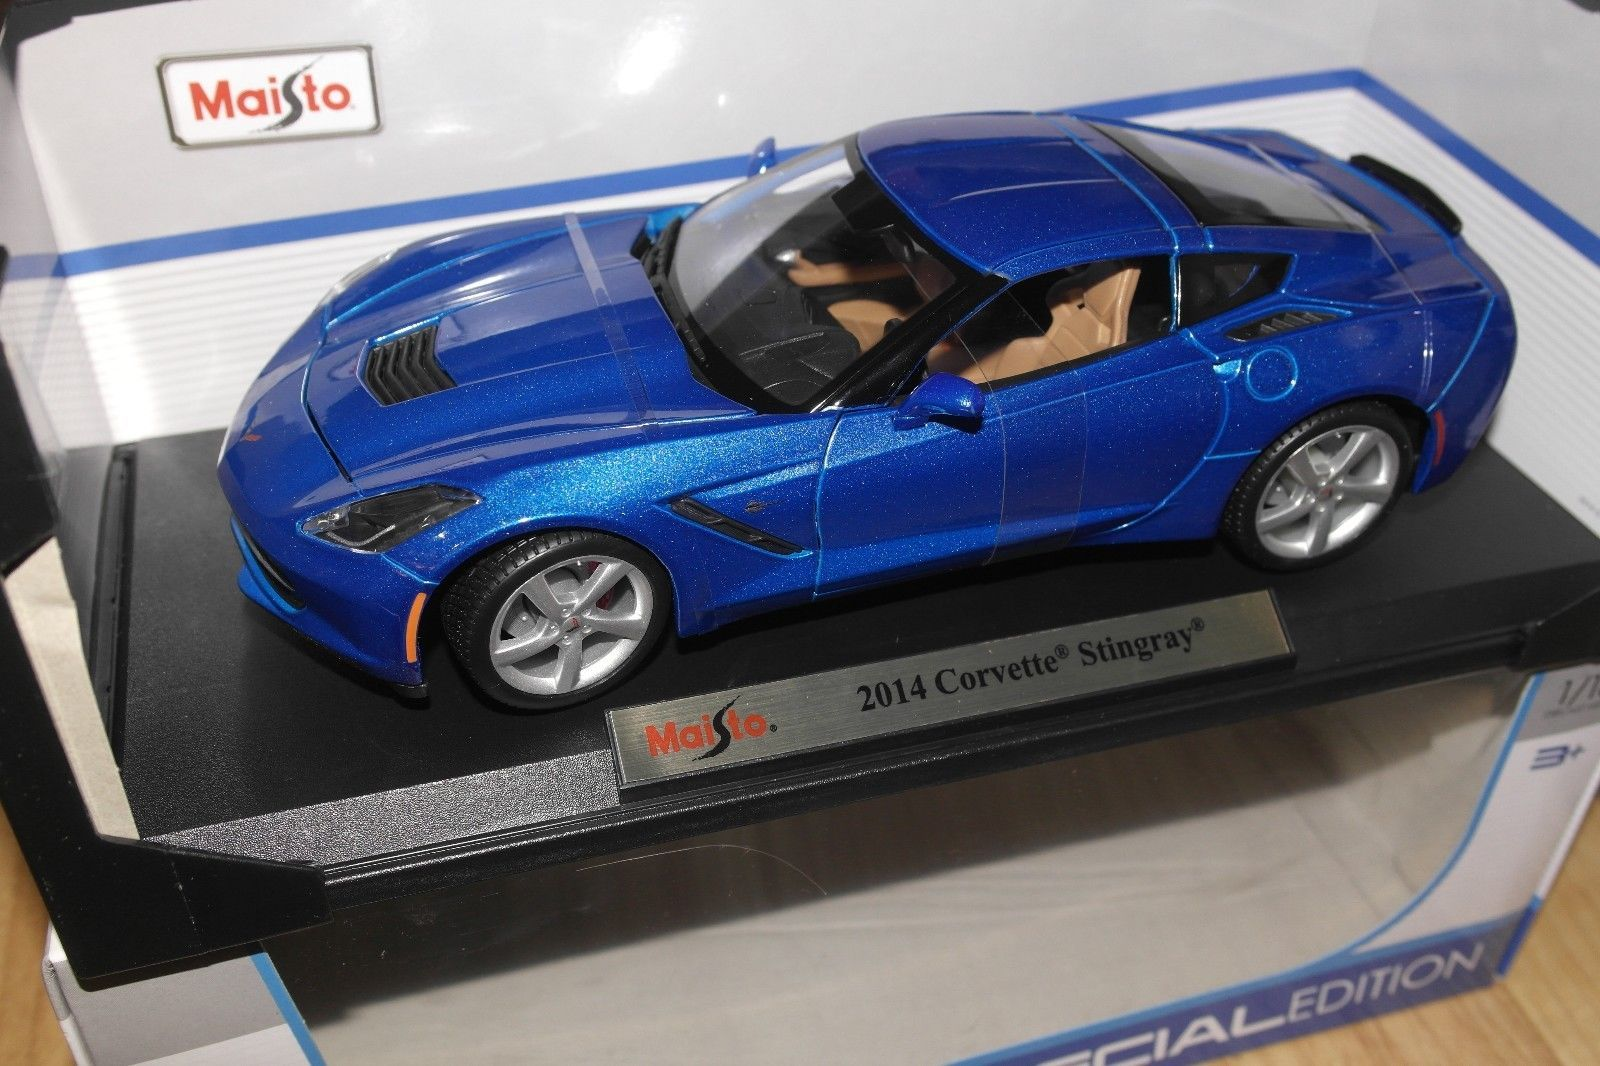 2014 chevrolet corvette blue stingray 1 18 model car by maisto 31182 ebay